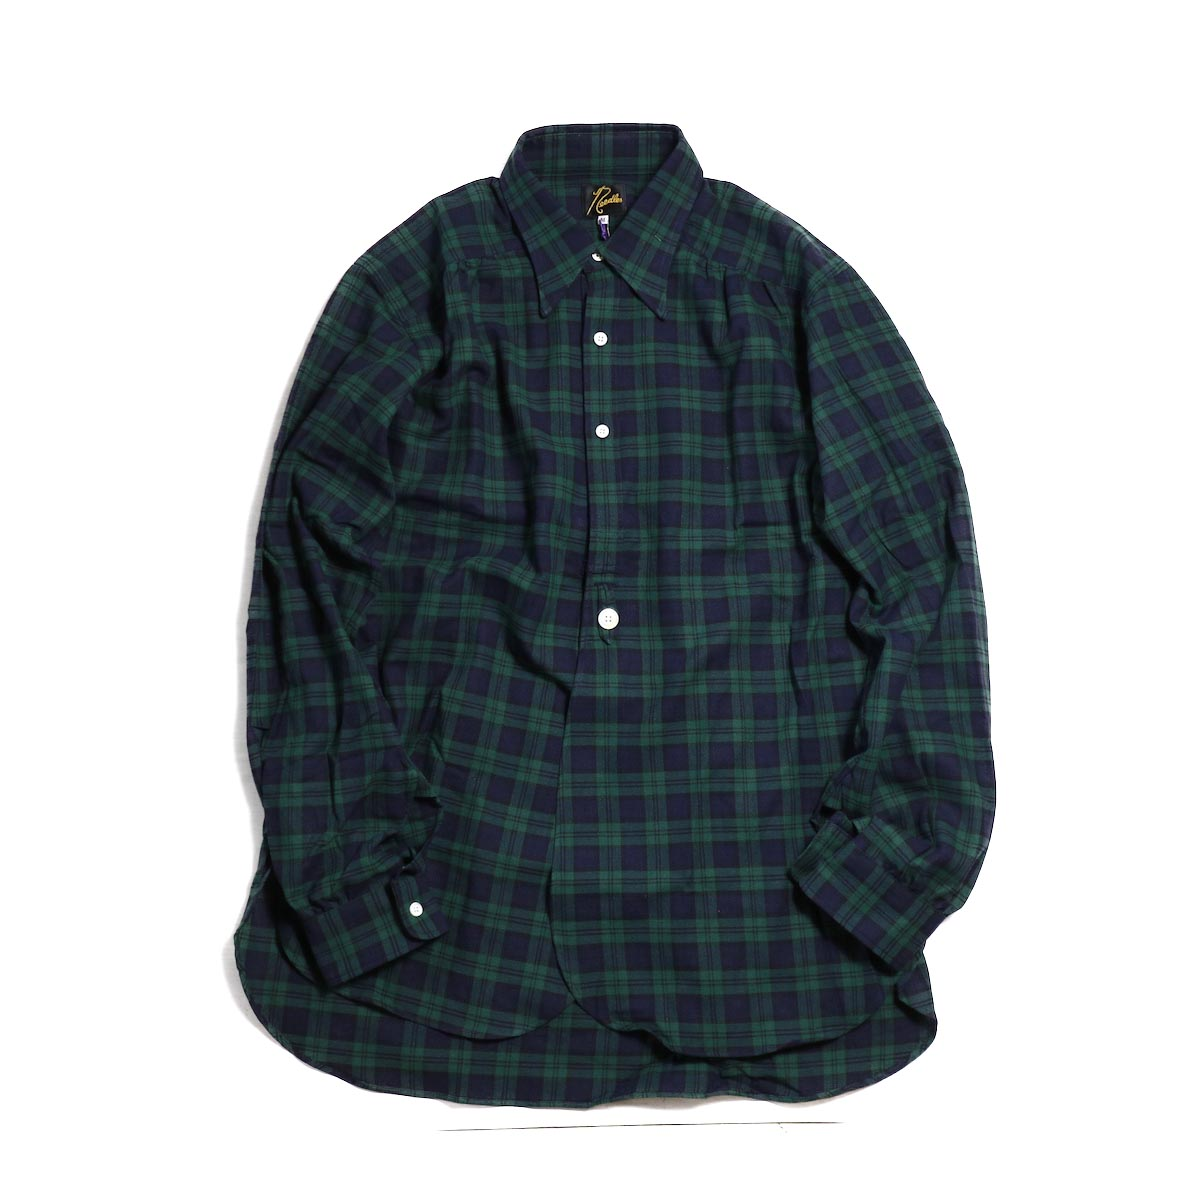 NEEDLES / Regular Collar Edw Gather Shirt Cotton Twill -BLACK WATCH